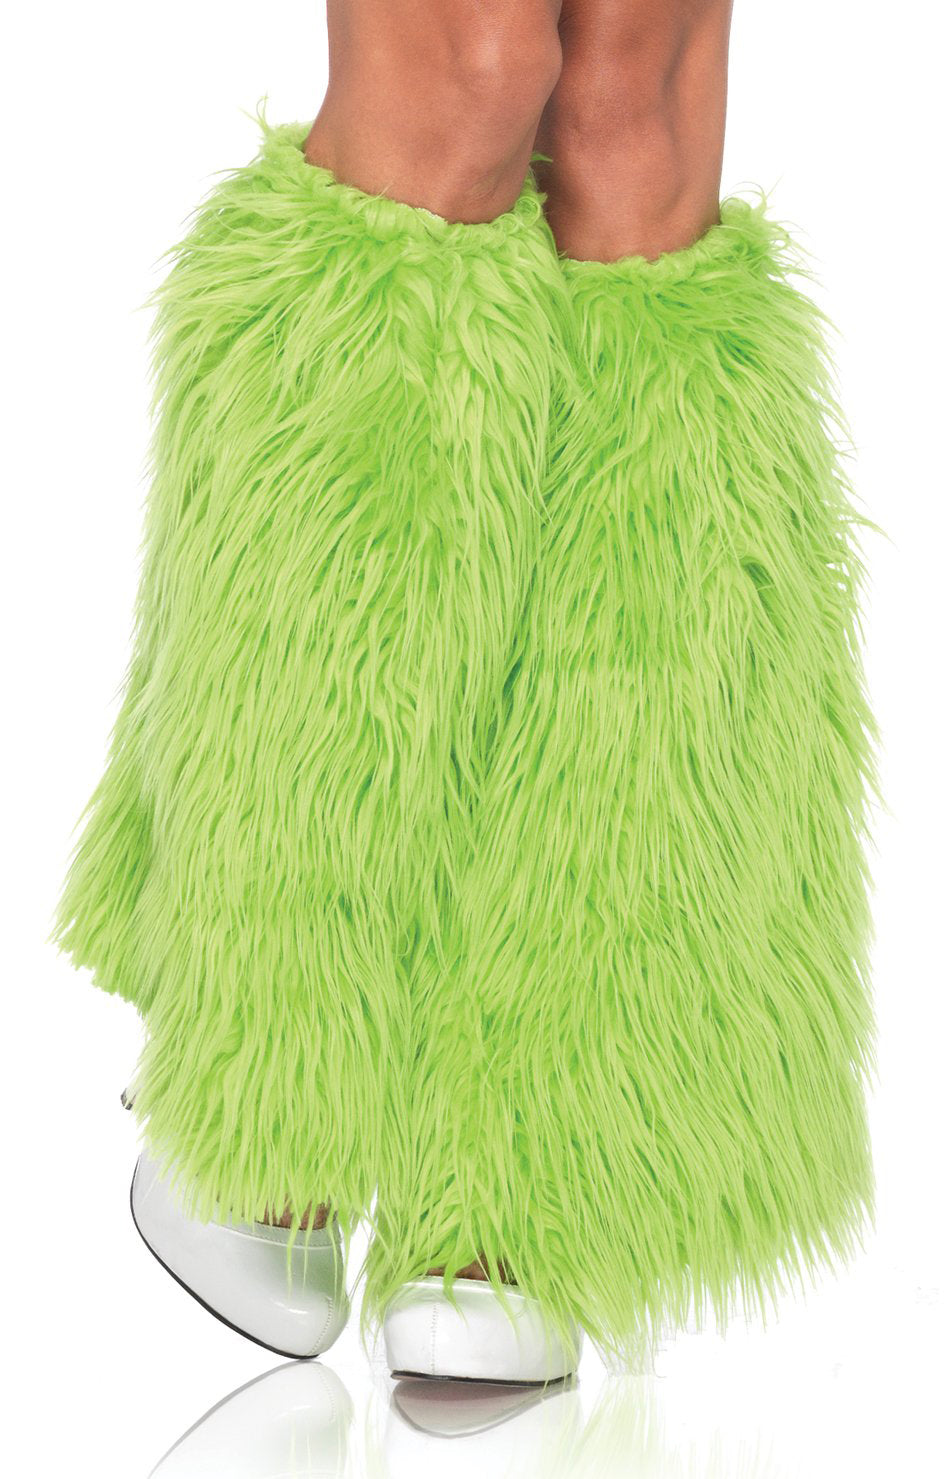 Irish Green Furry Leg Warmers